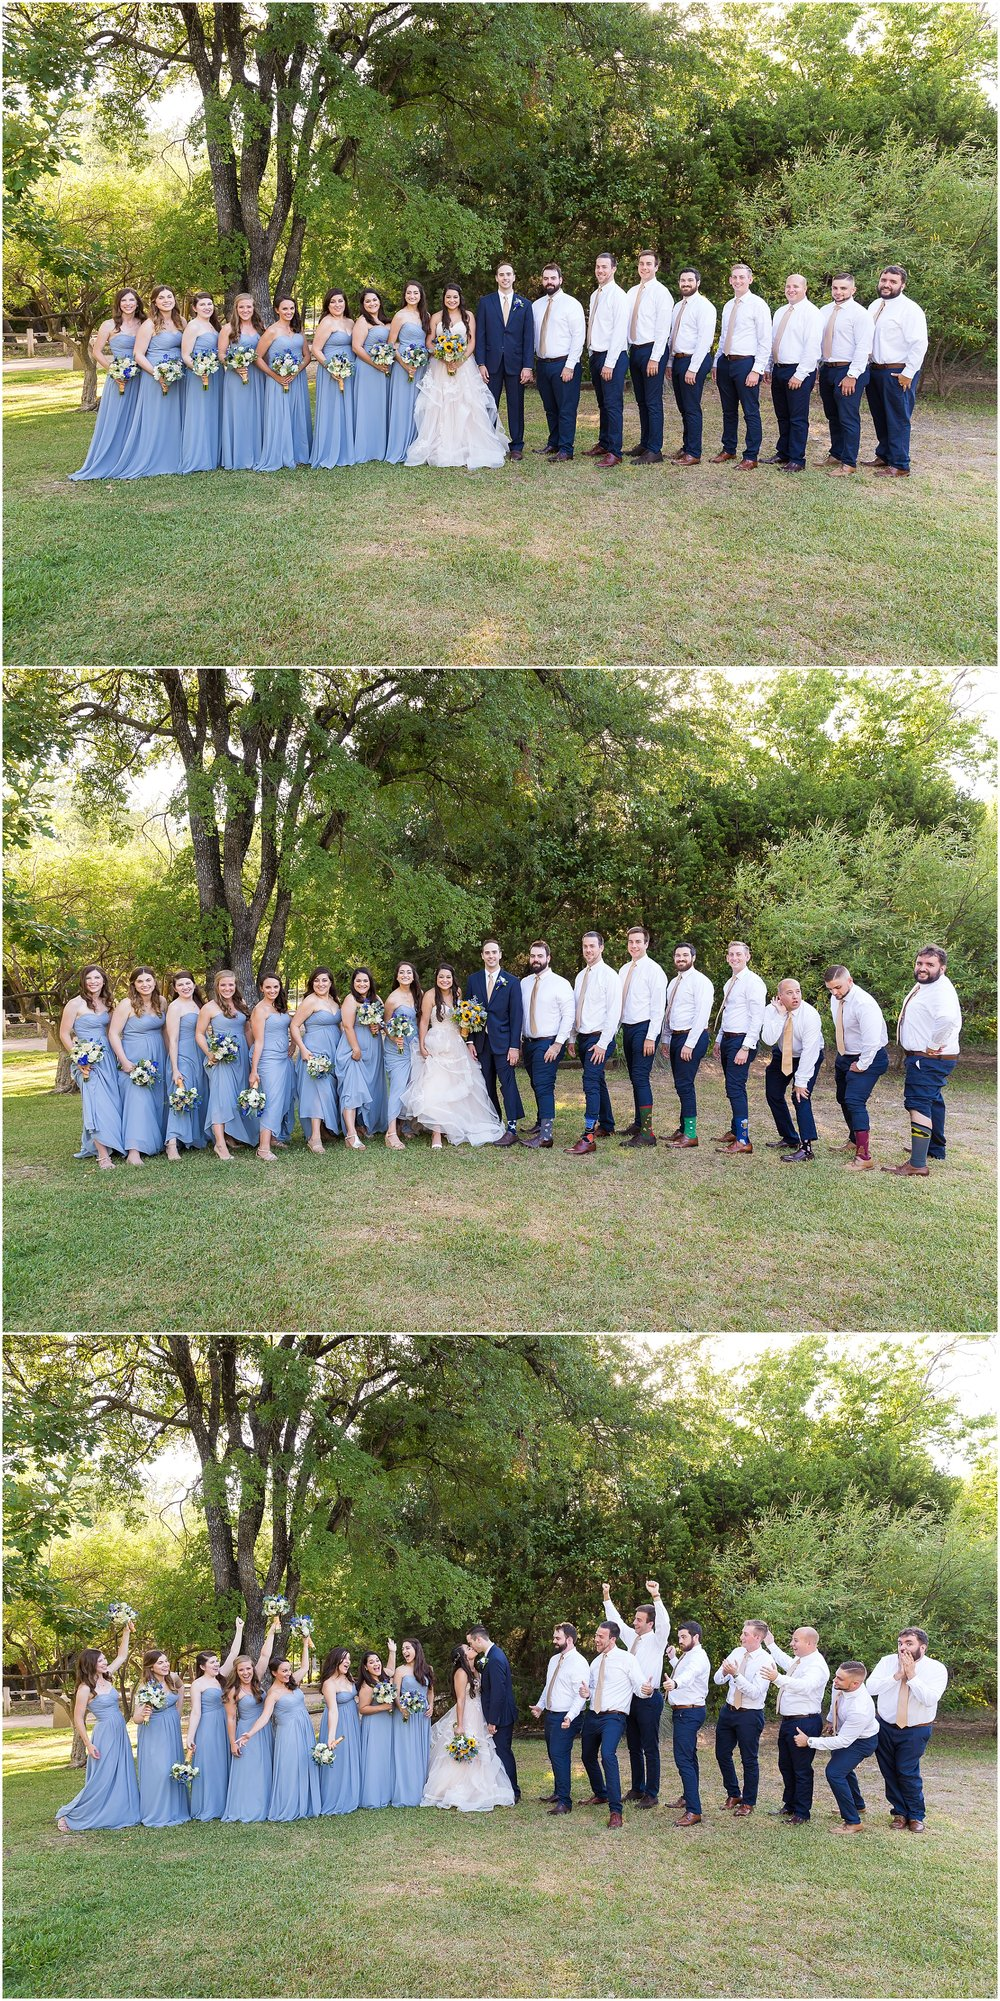 Pale blue bridesmaids gowns and navy slacks and yellow ties for groomsmen